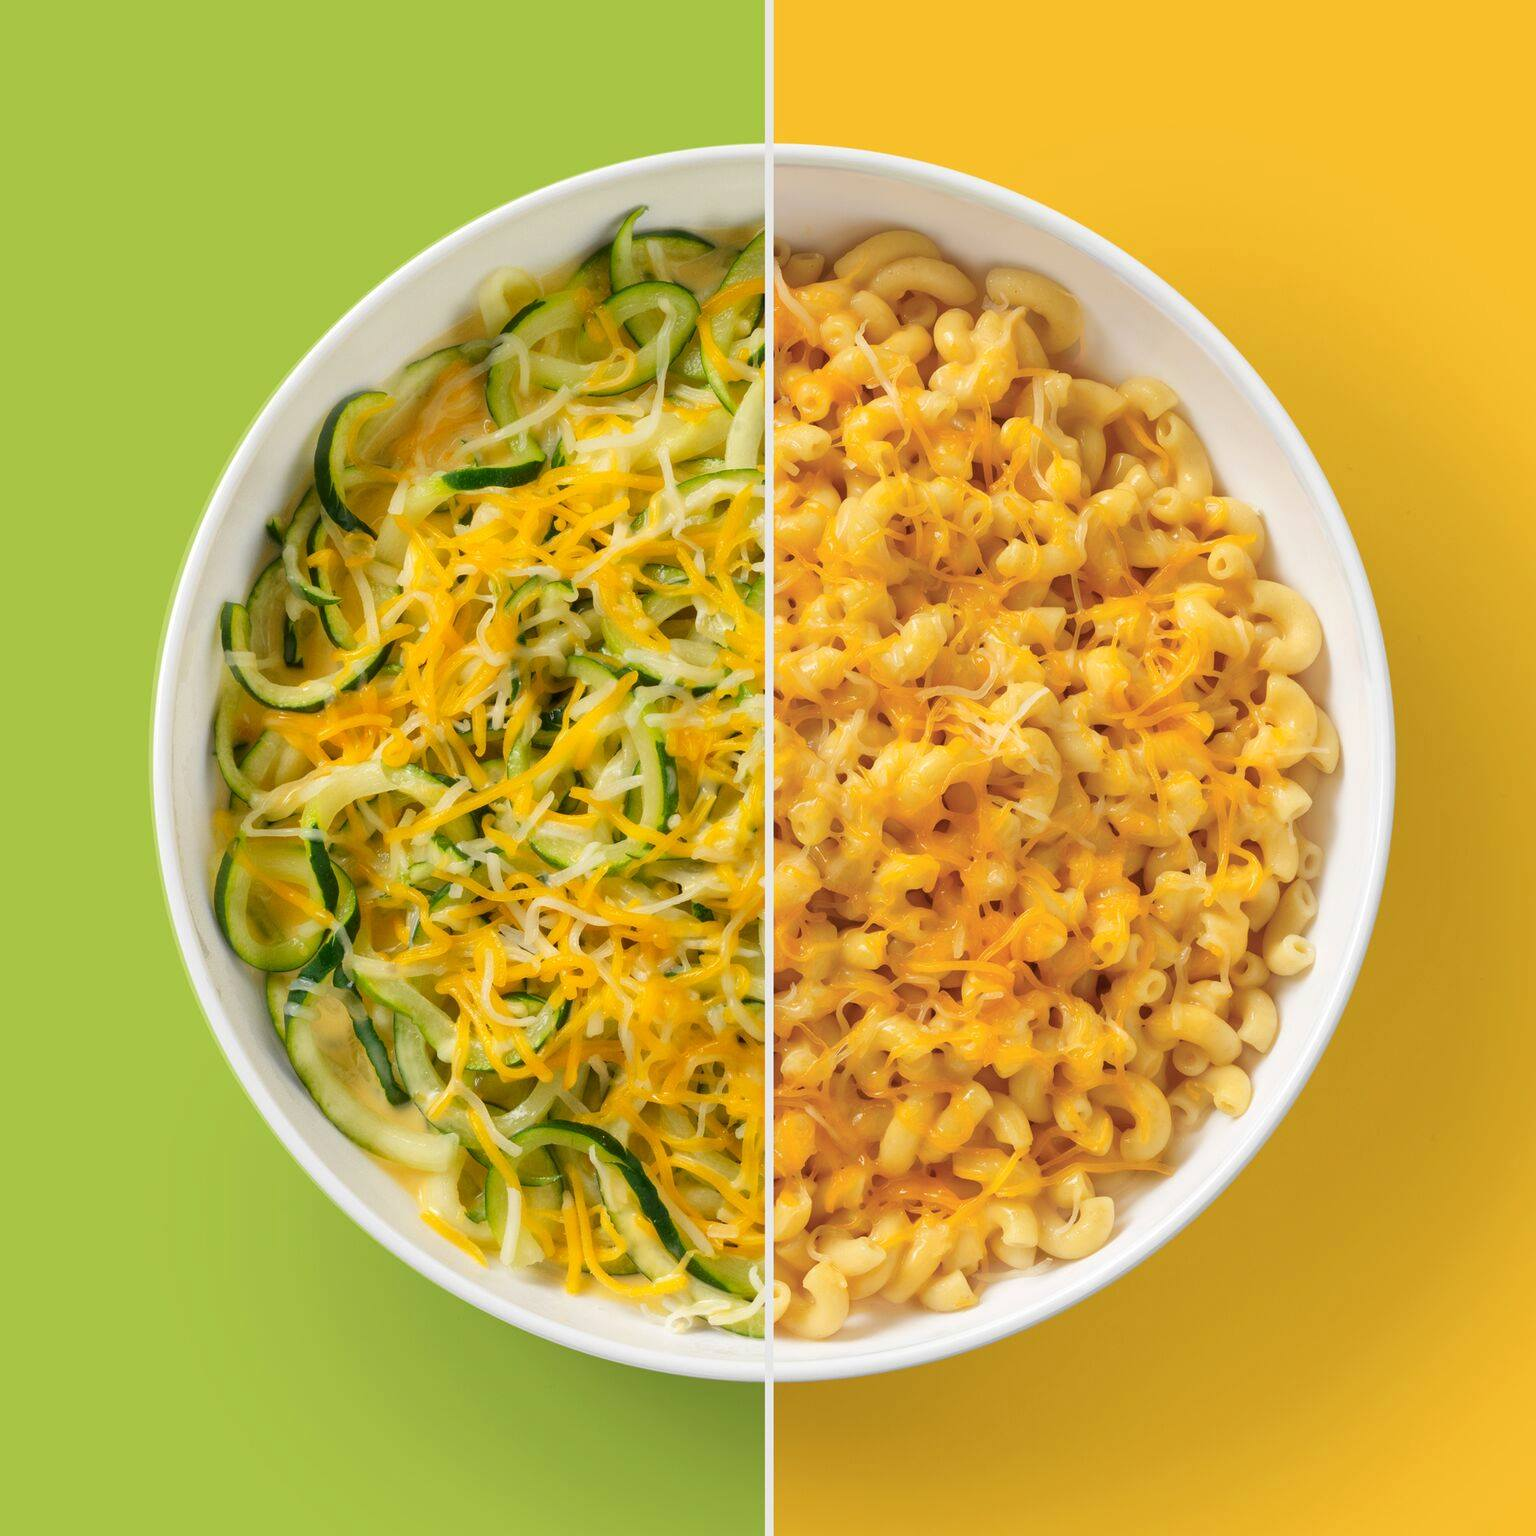 zucchini noodles launched nationwide